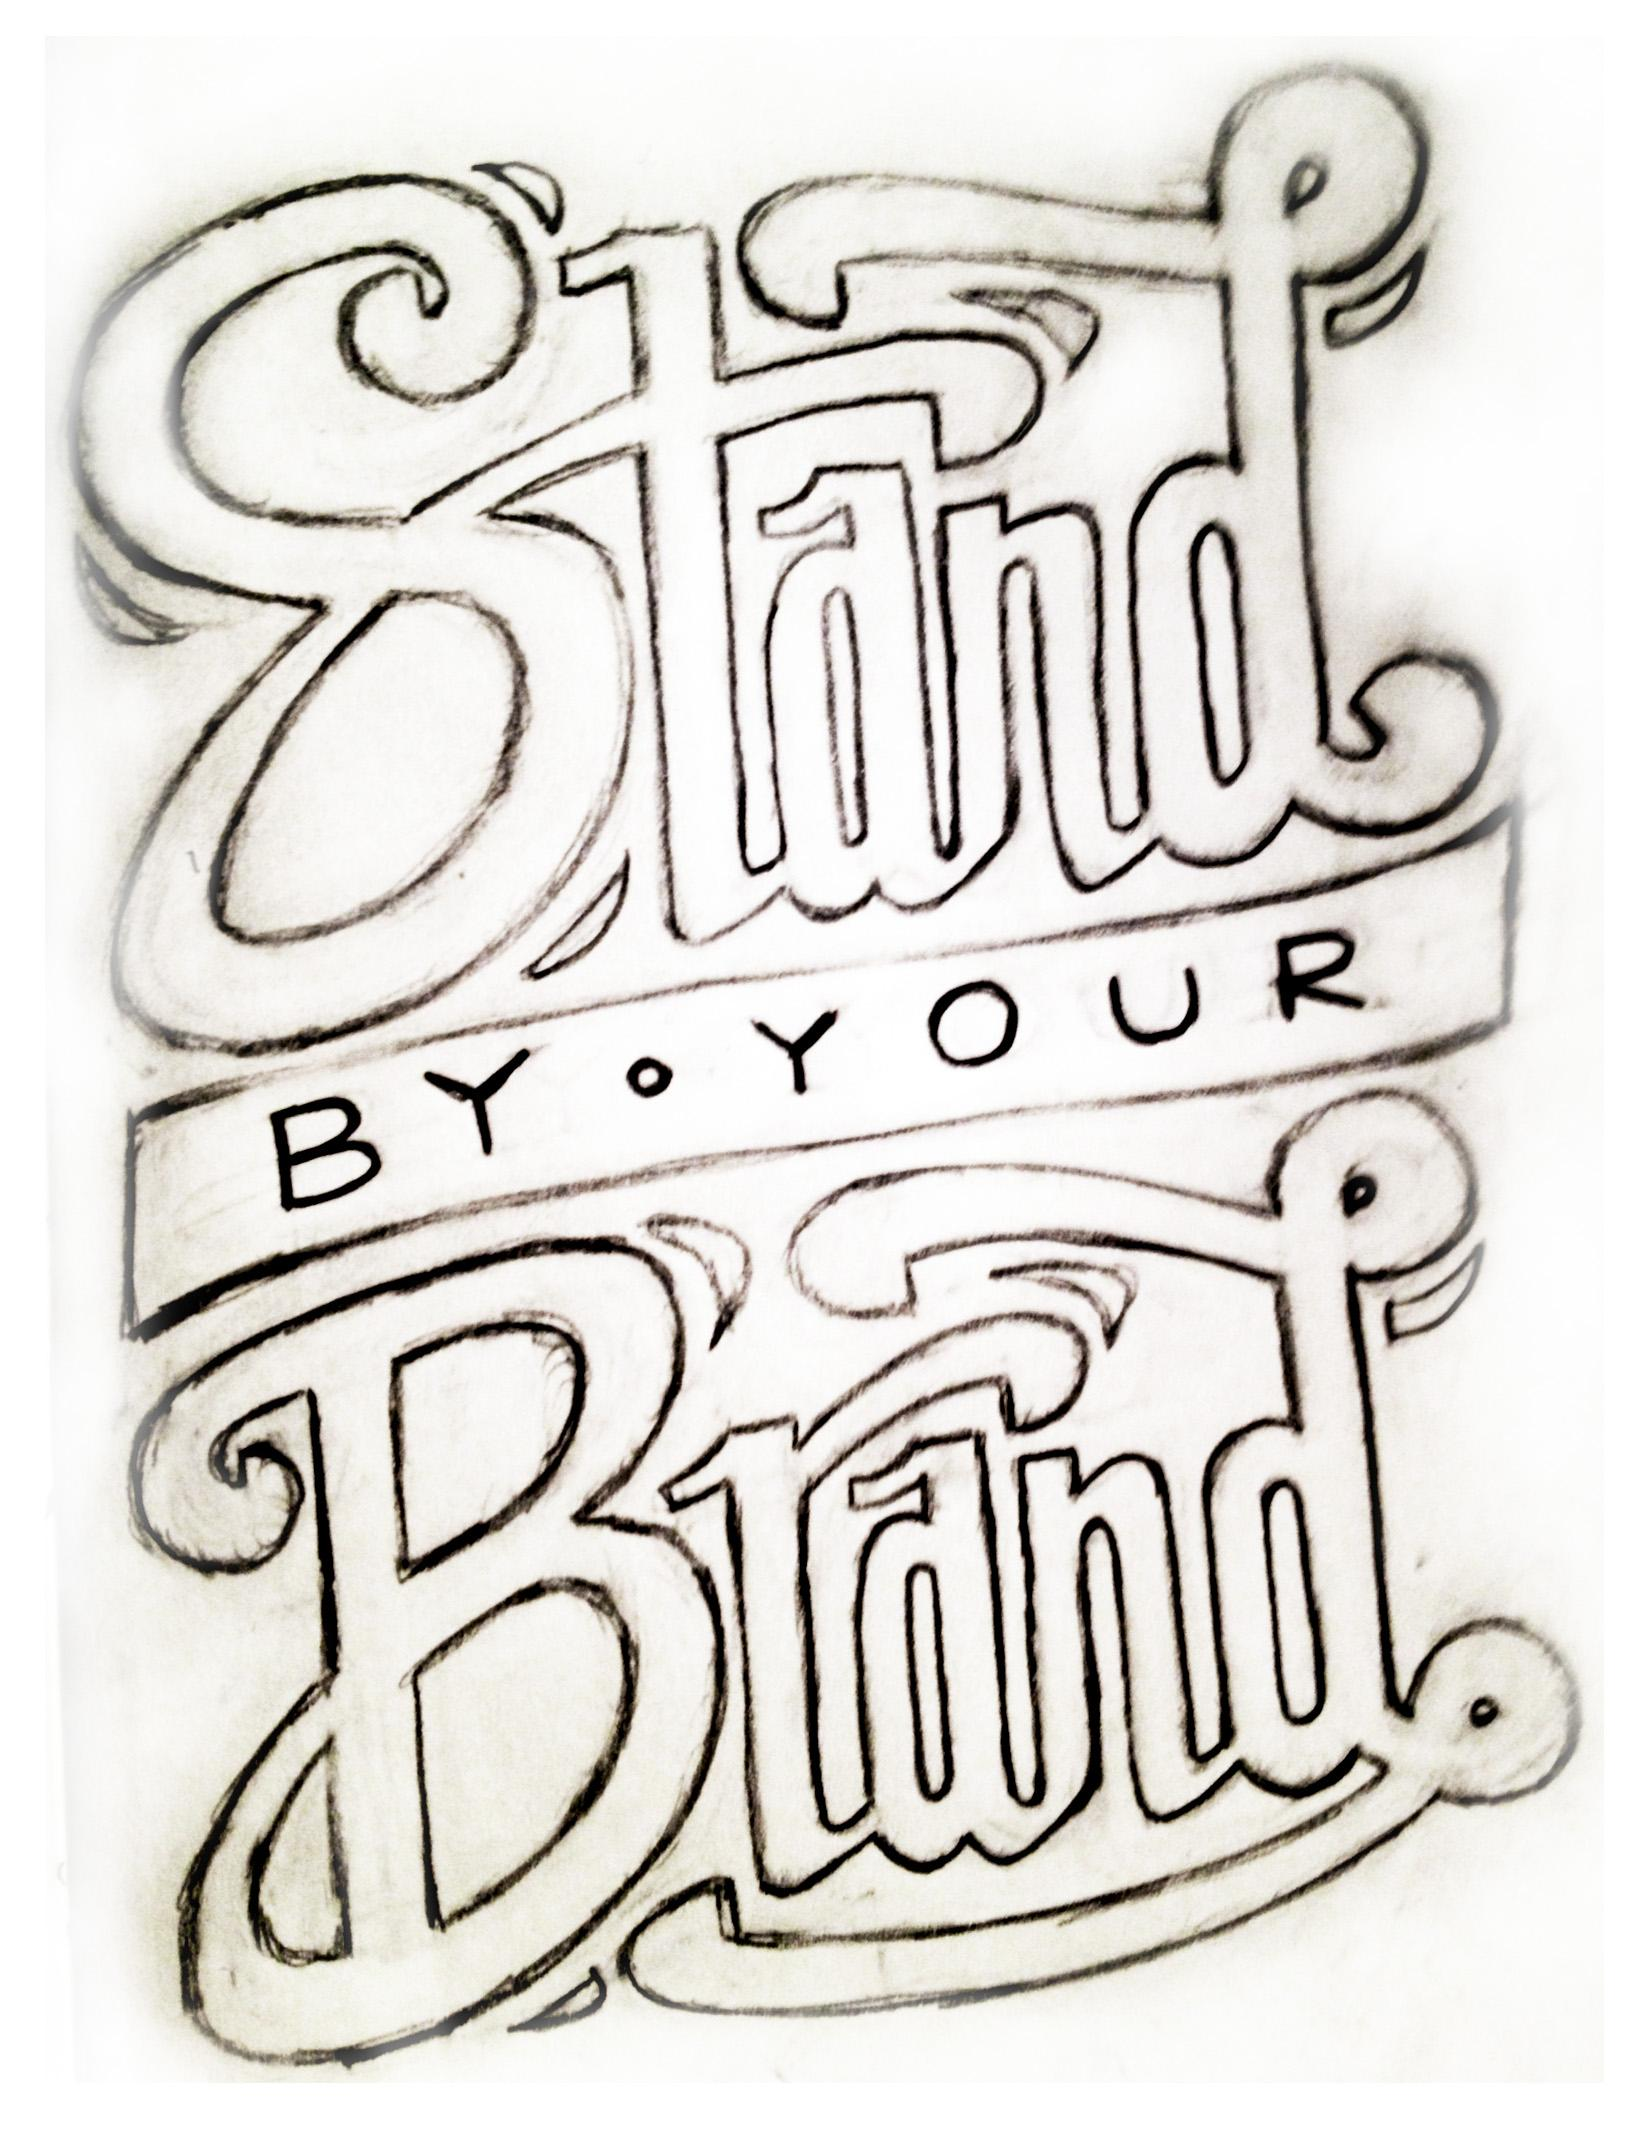 Stand By Your Brand - image 1 - student project